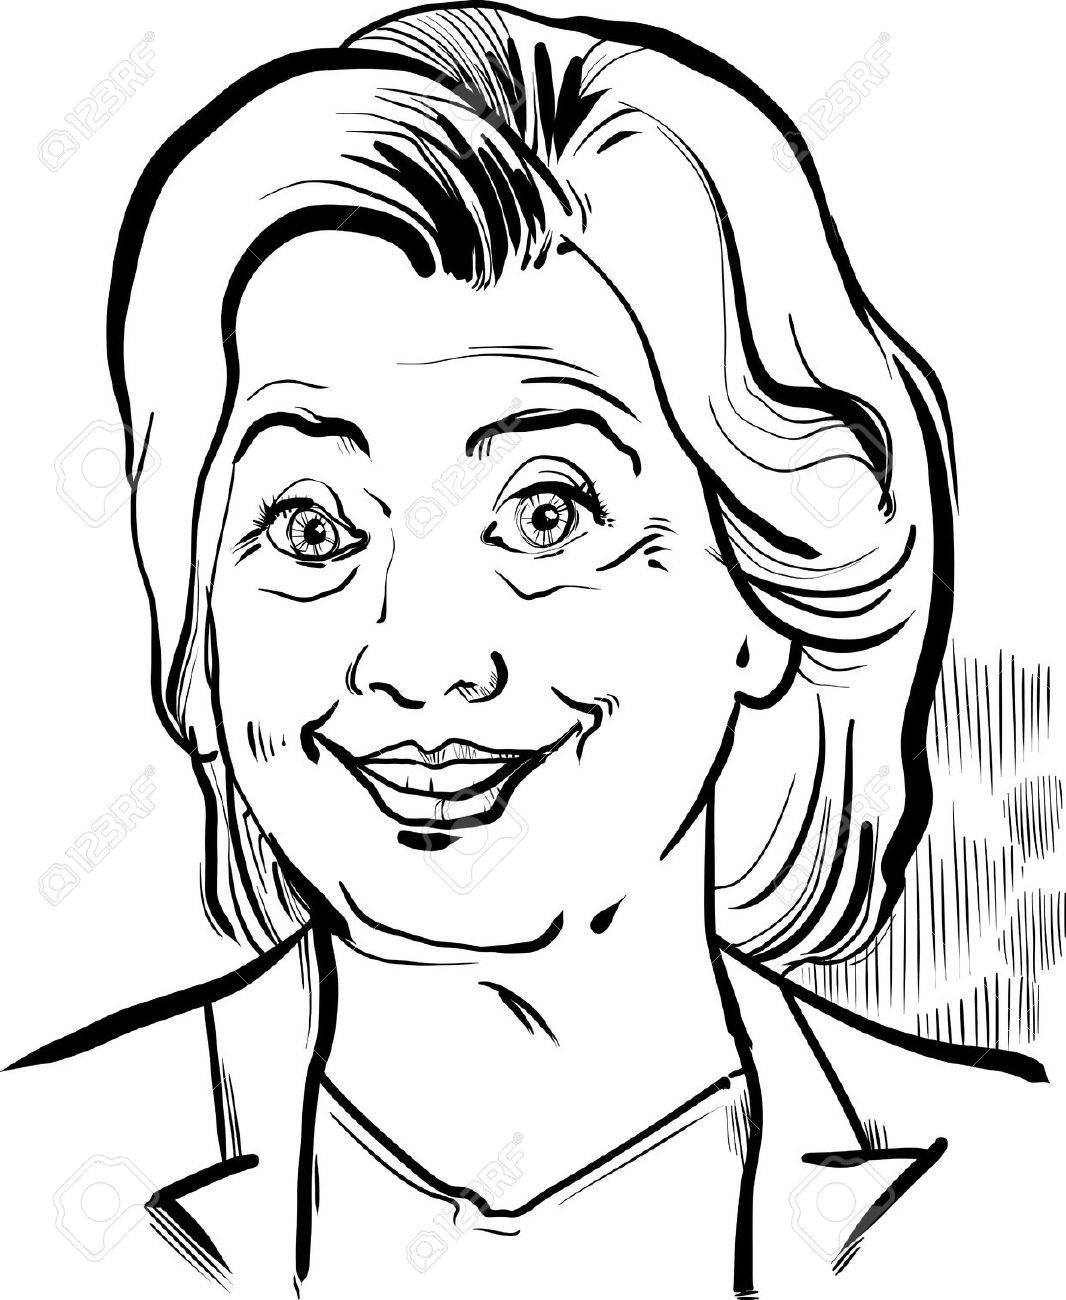 1066x1300 Black And White Drawing Caricature Portrait Of Hillary Clinton